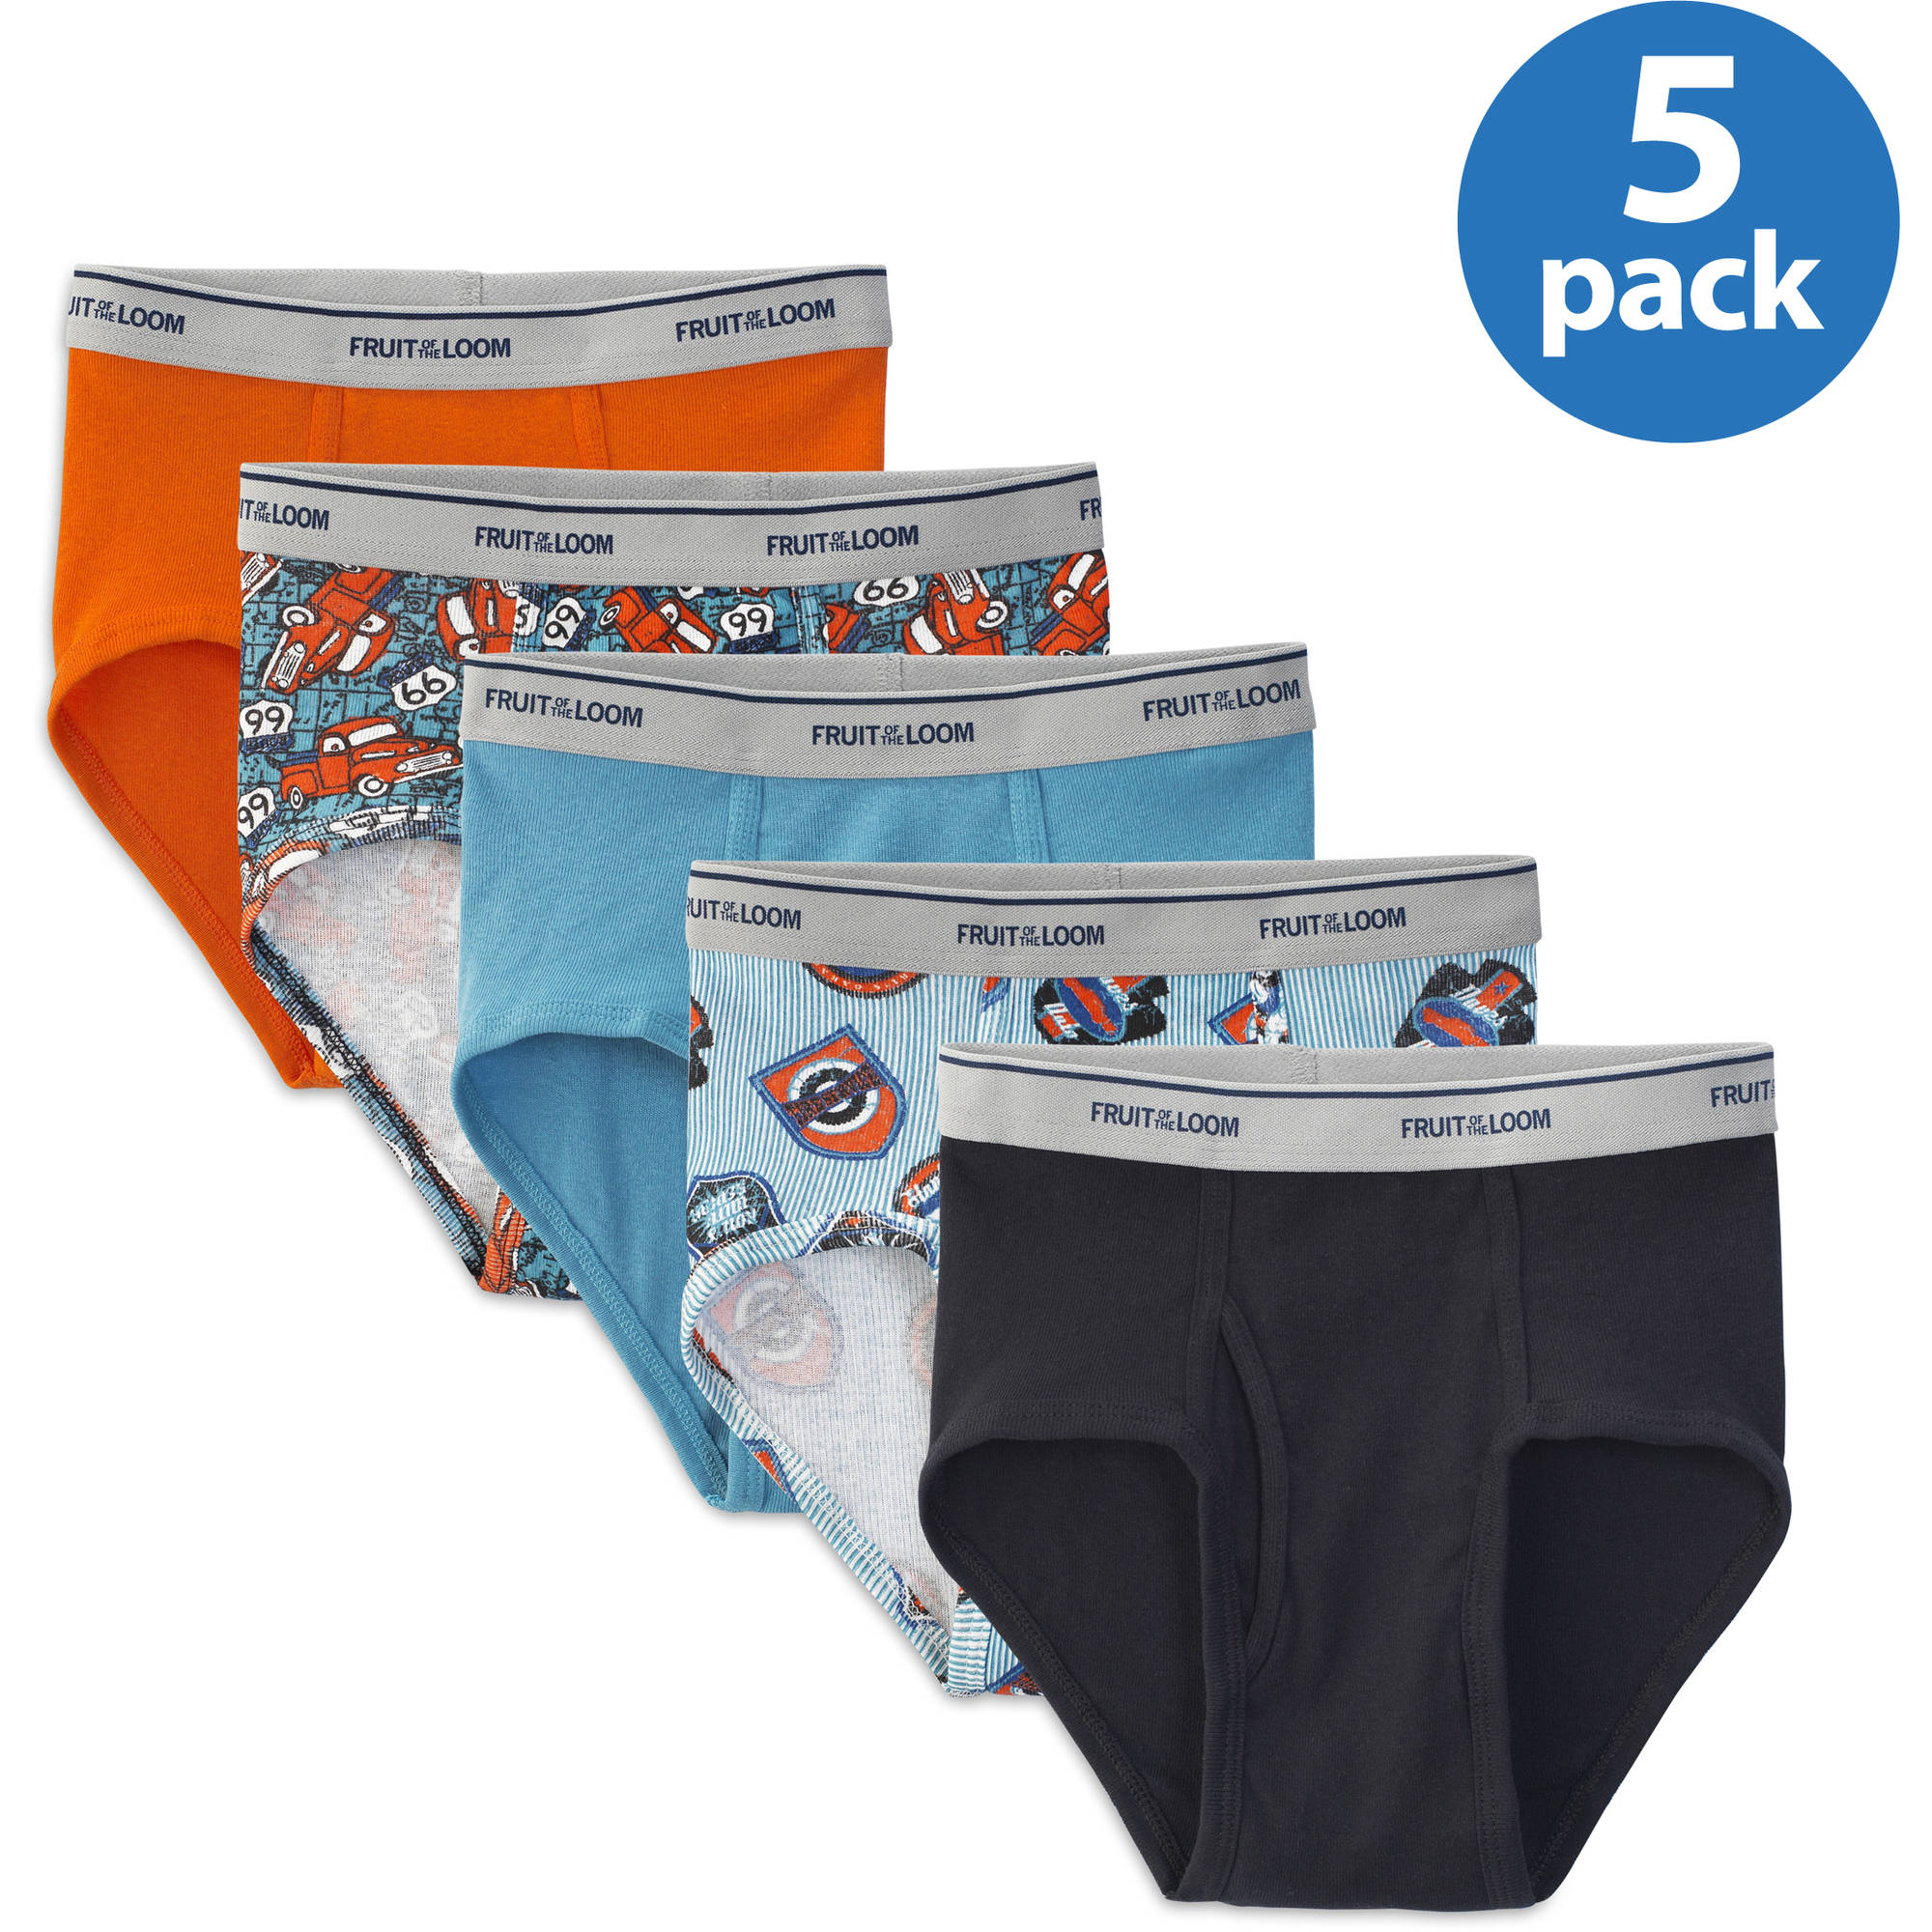 Fruit of the Loom Boys' Assorted Color Briefs, 5 Pack